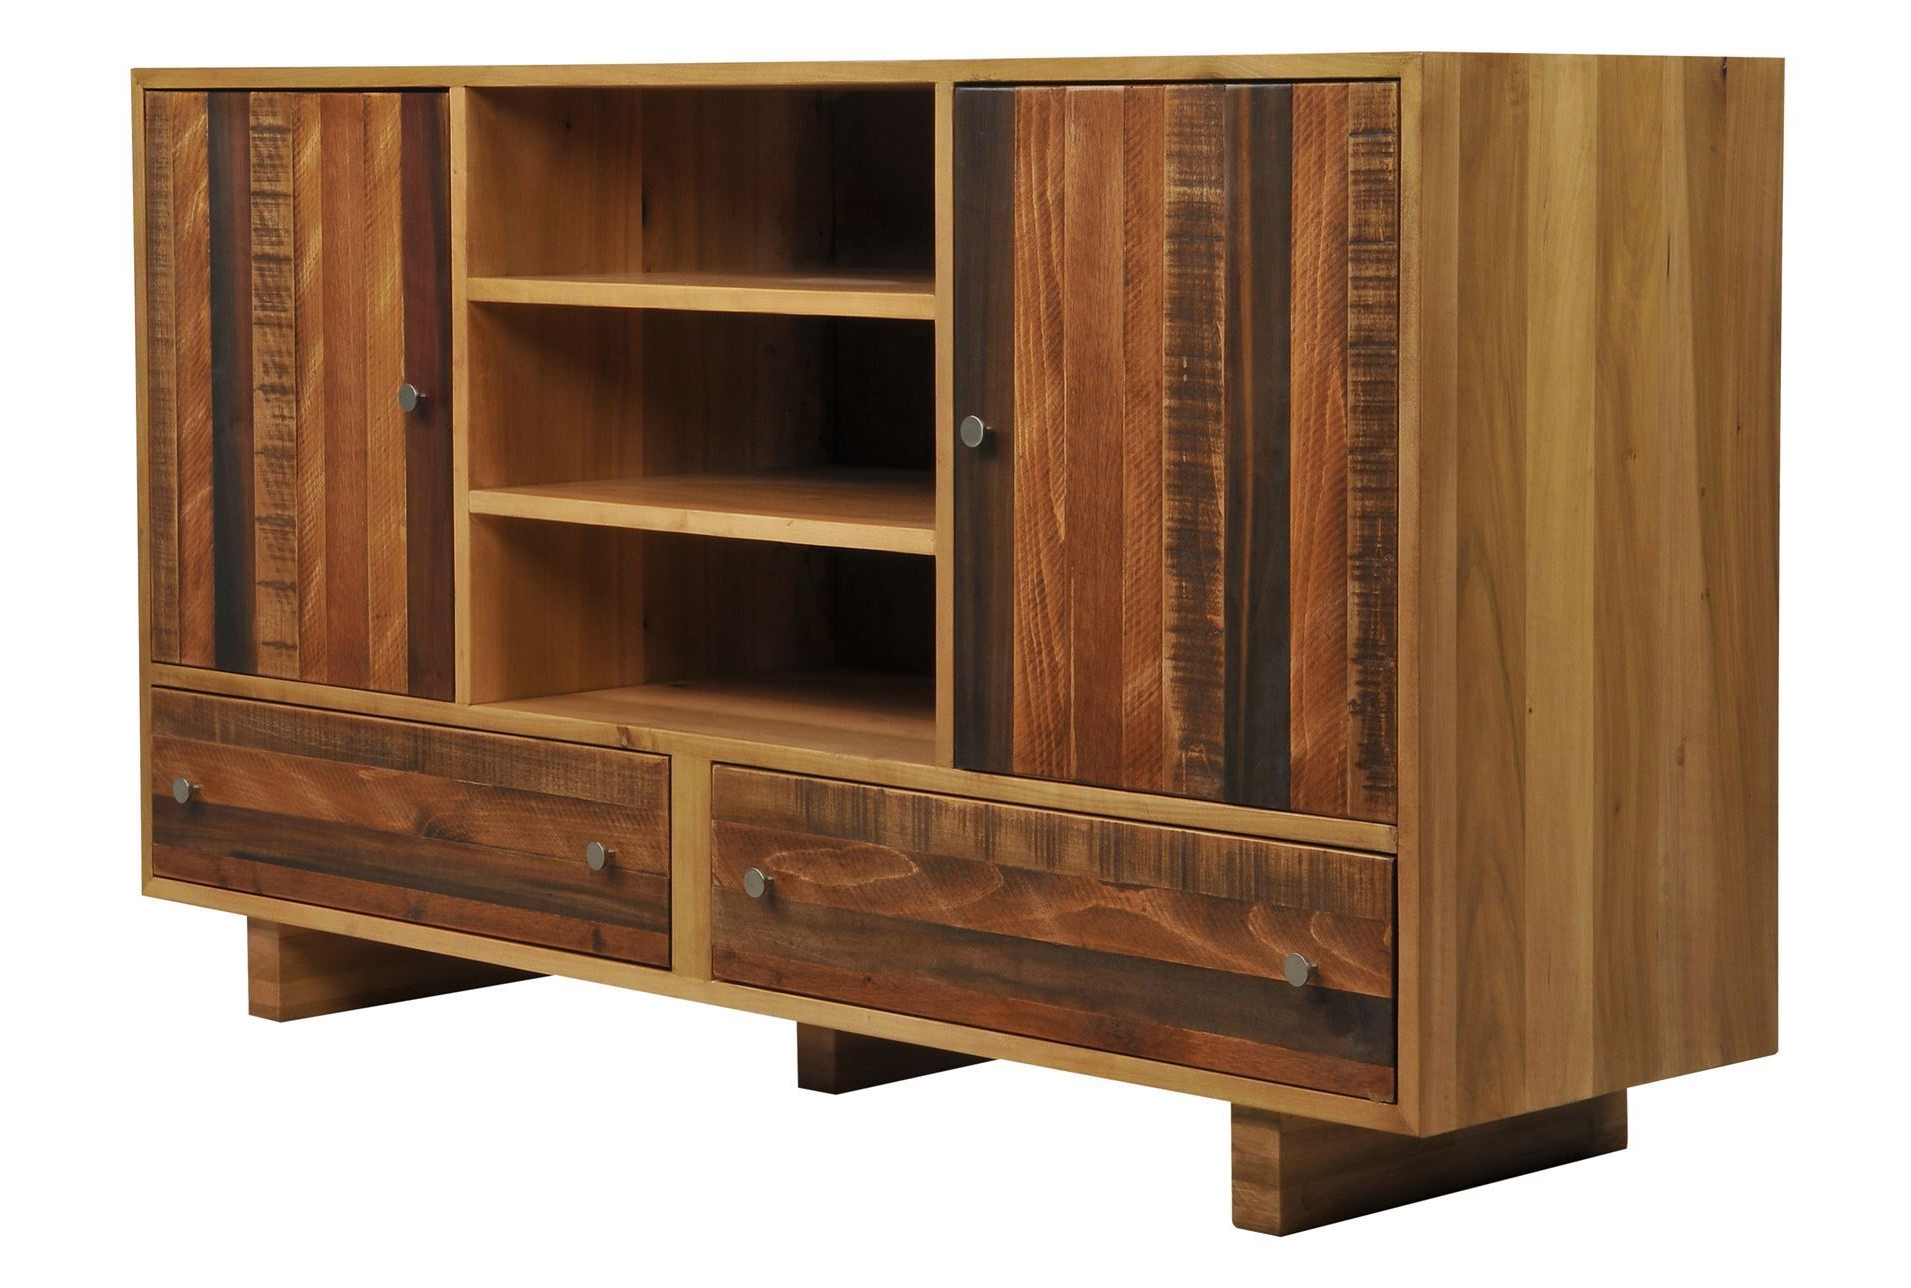 Everett 64 Inch Tv Console | Living Spaces | Pinterest | Consoles Pertaining To Jacen 78 Inch Tv Stands (Gallery 6 of 20)